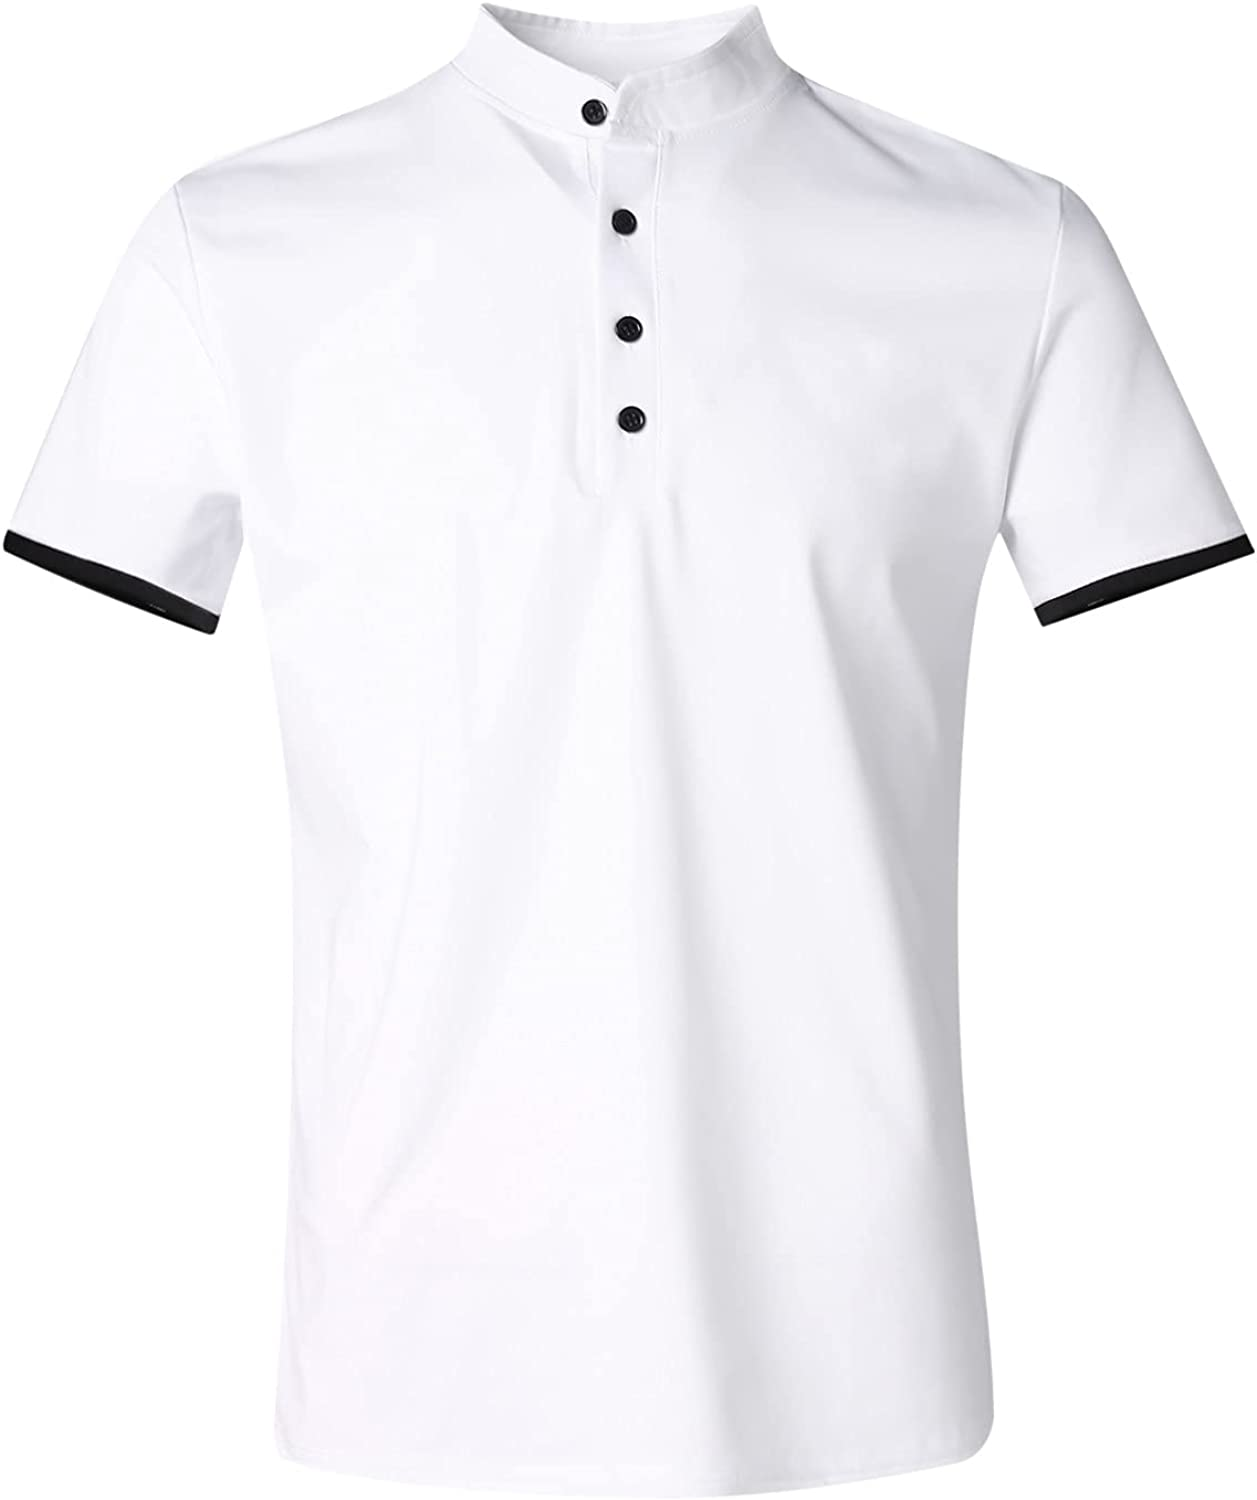 Men's Summer Slim Tee Shirt Henley 3 Button Casual Solid Color Tops Contrast Short Sleeve T-Shirts for Men